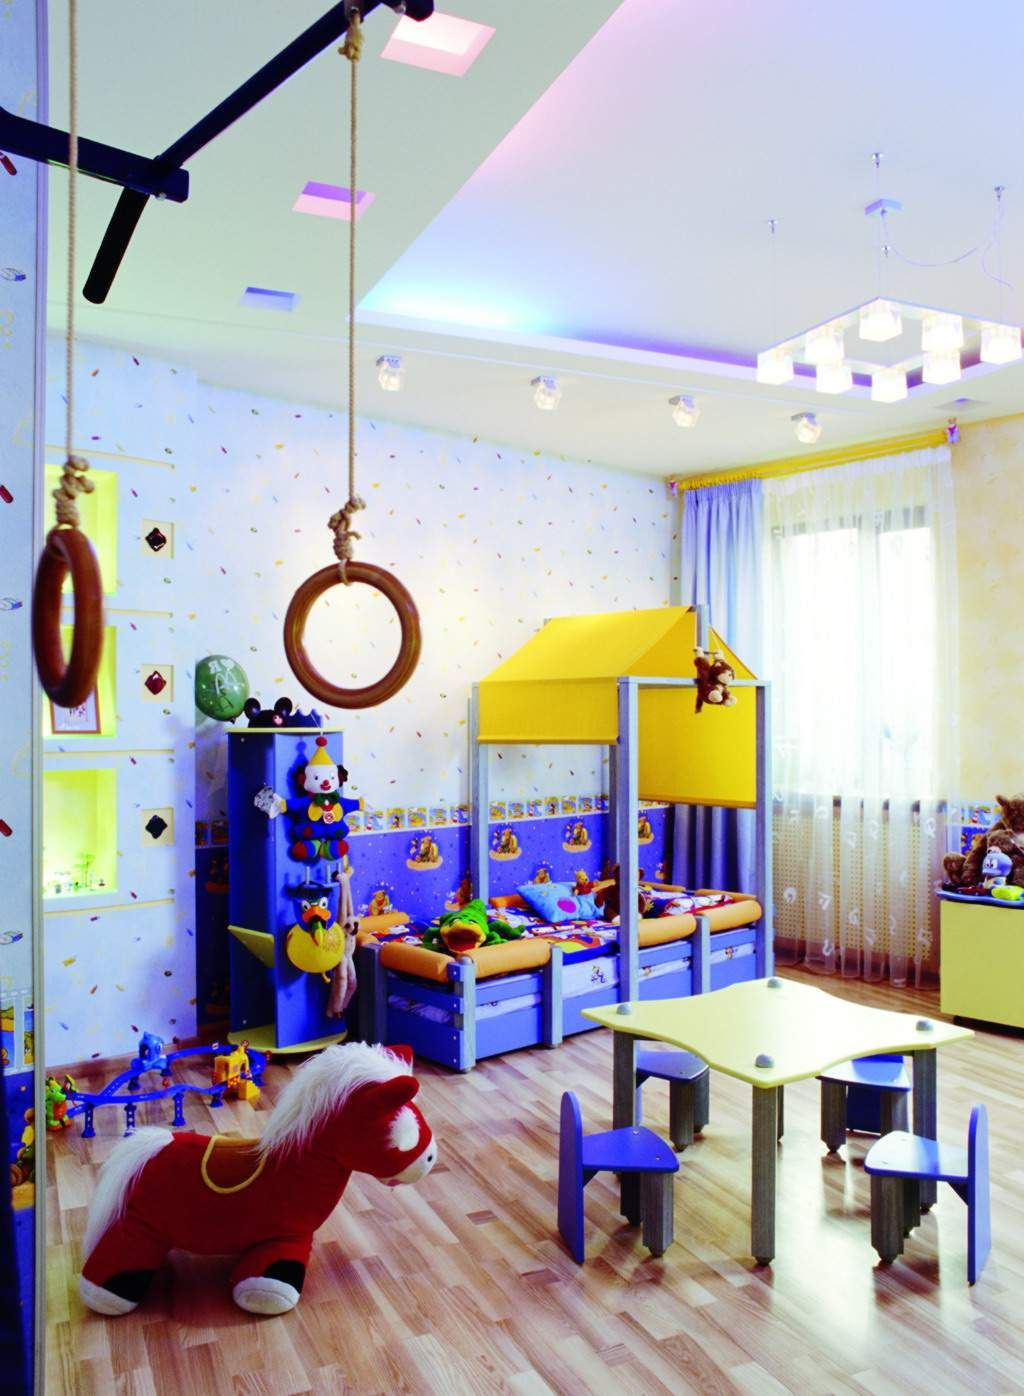 Kids Bedroom Kids Room Interior Design With Play And Learn Area